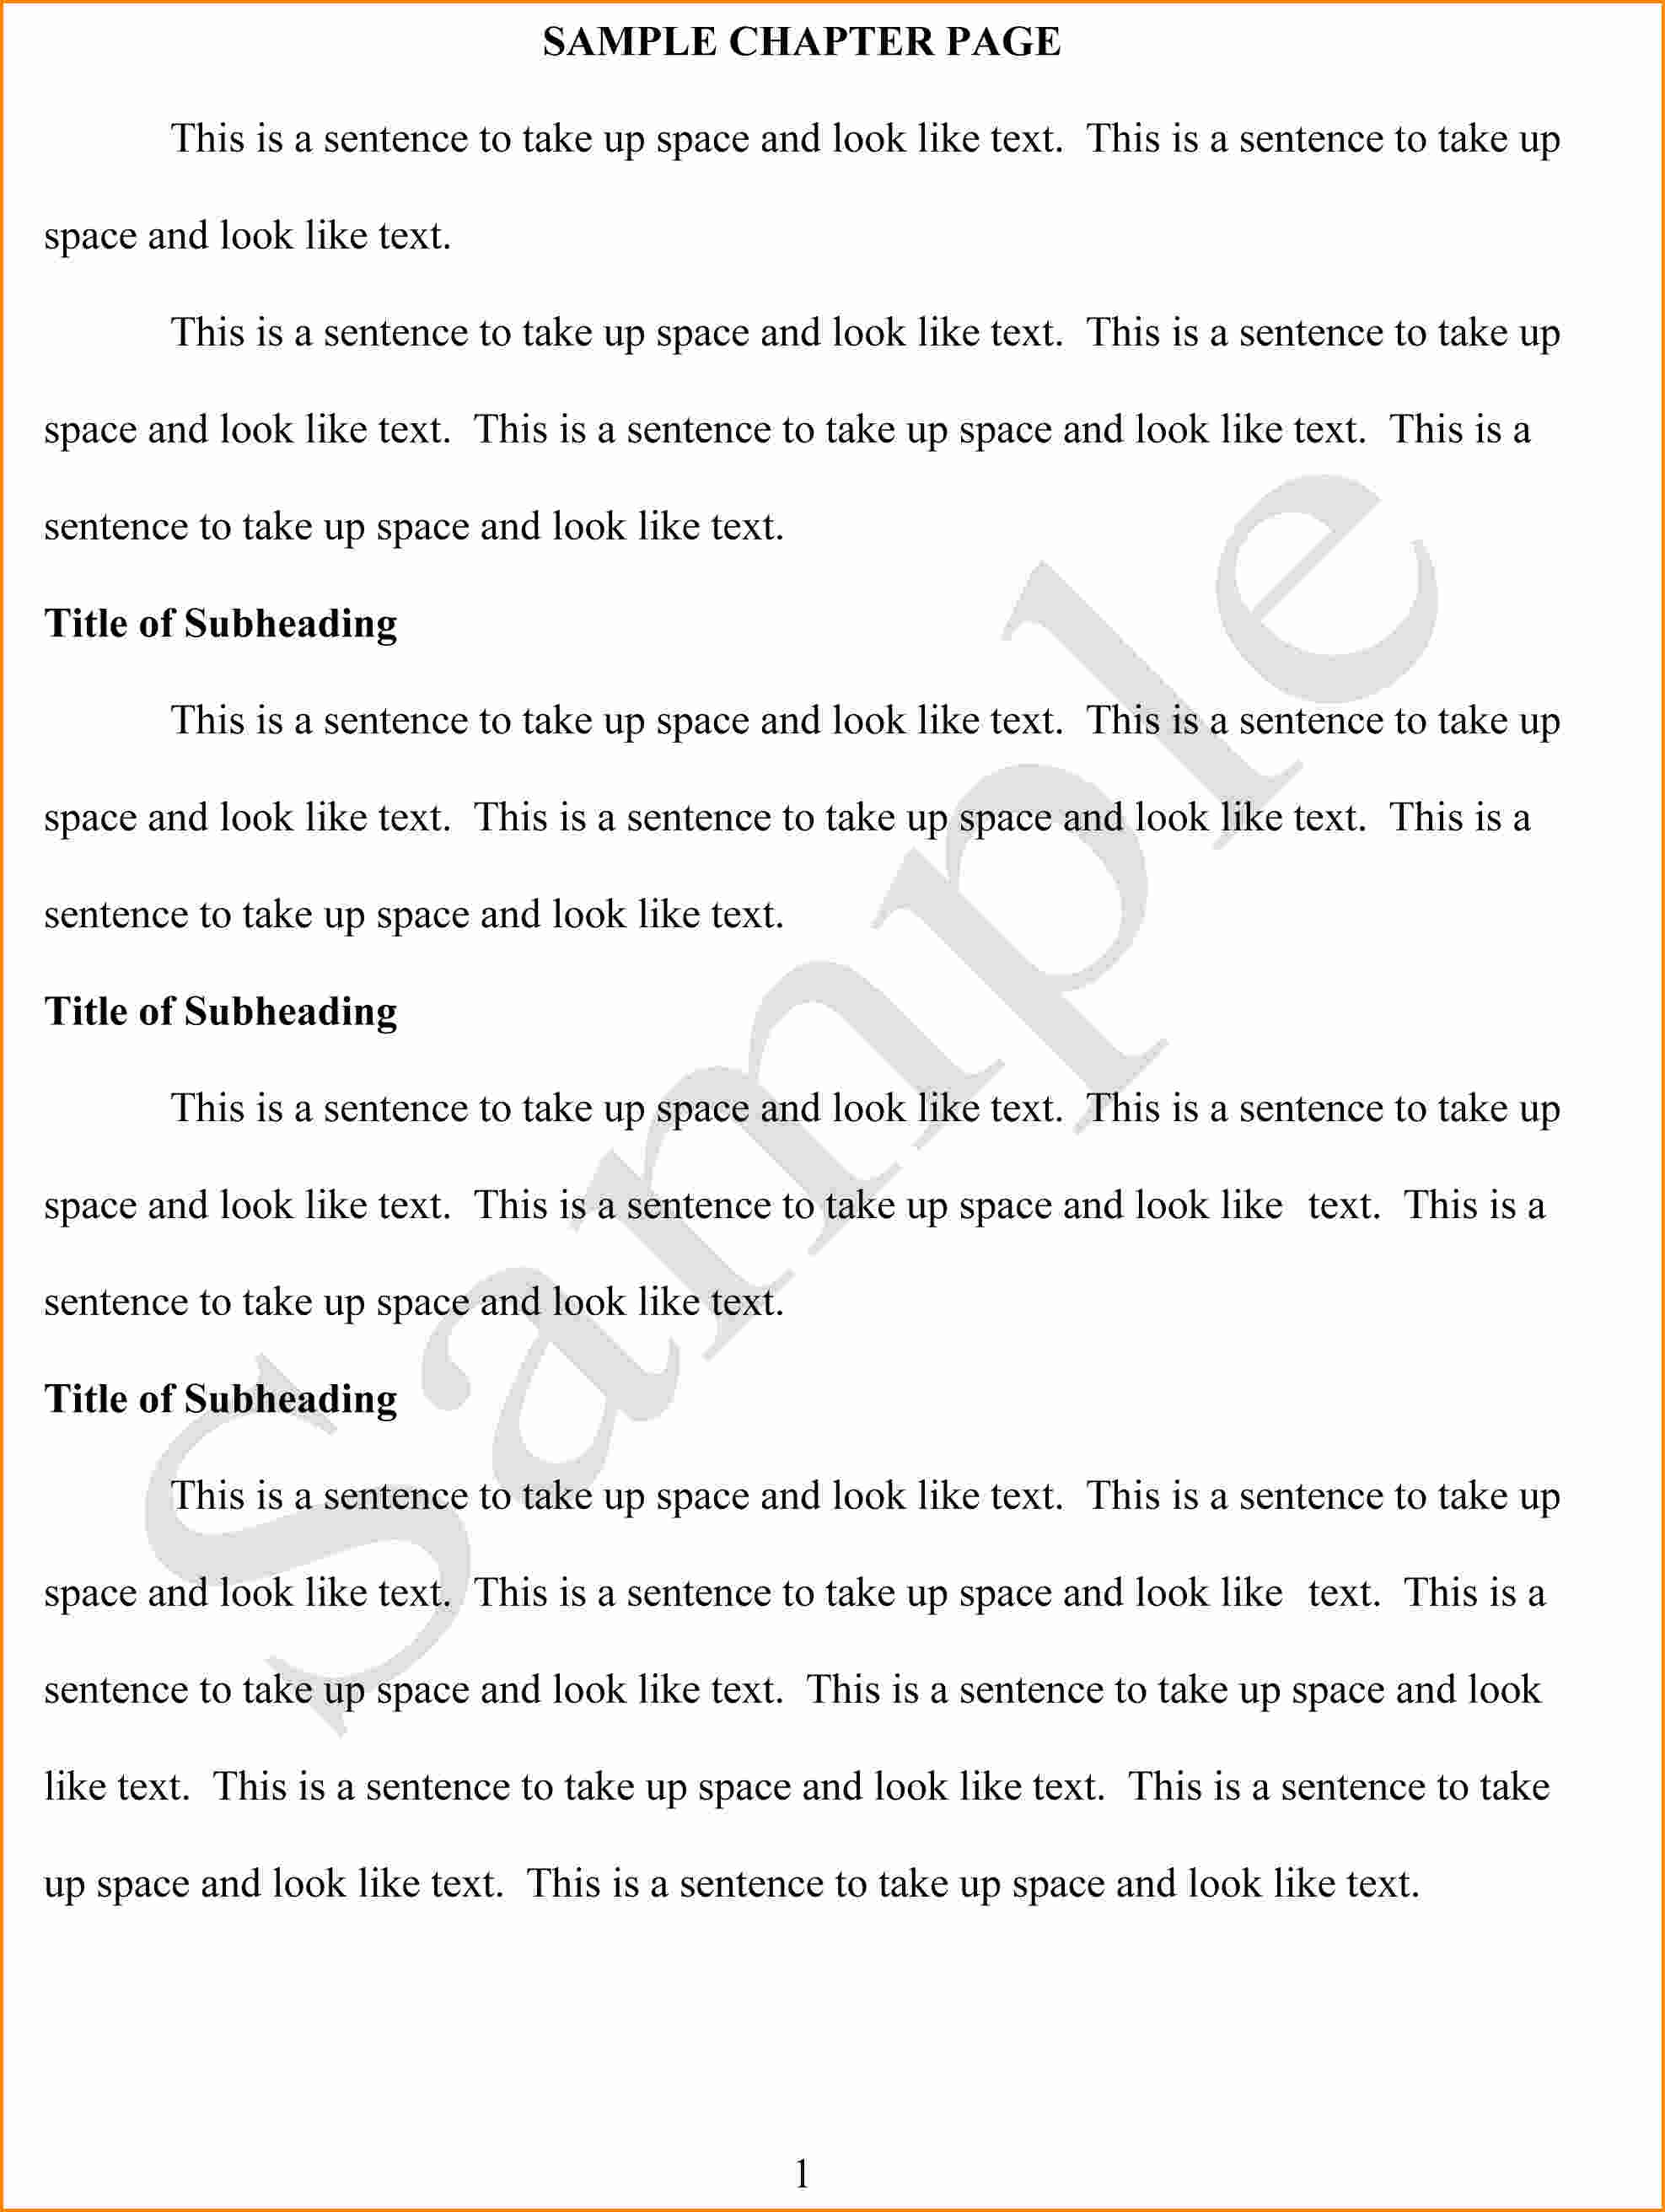 009 Expository Essay Sample 1 Whats An ~ Thatsnotus